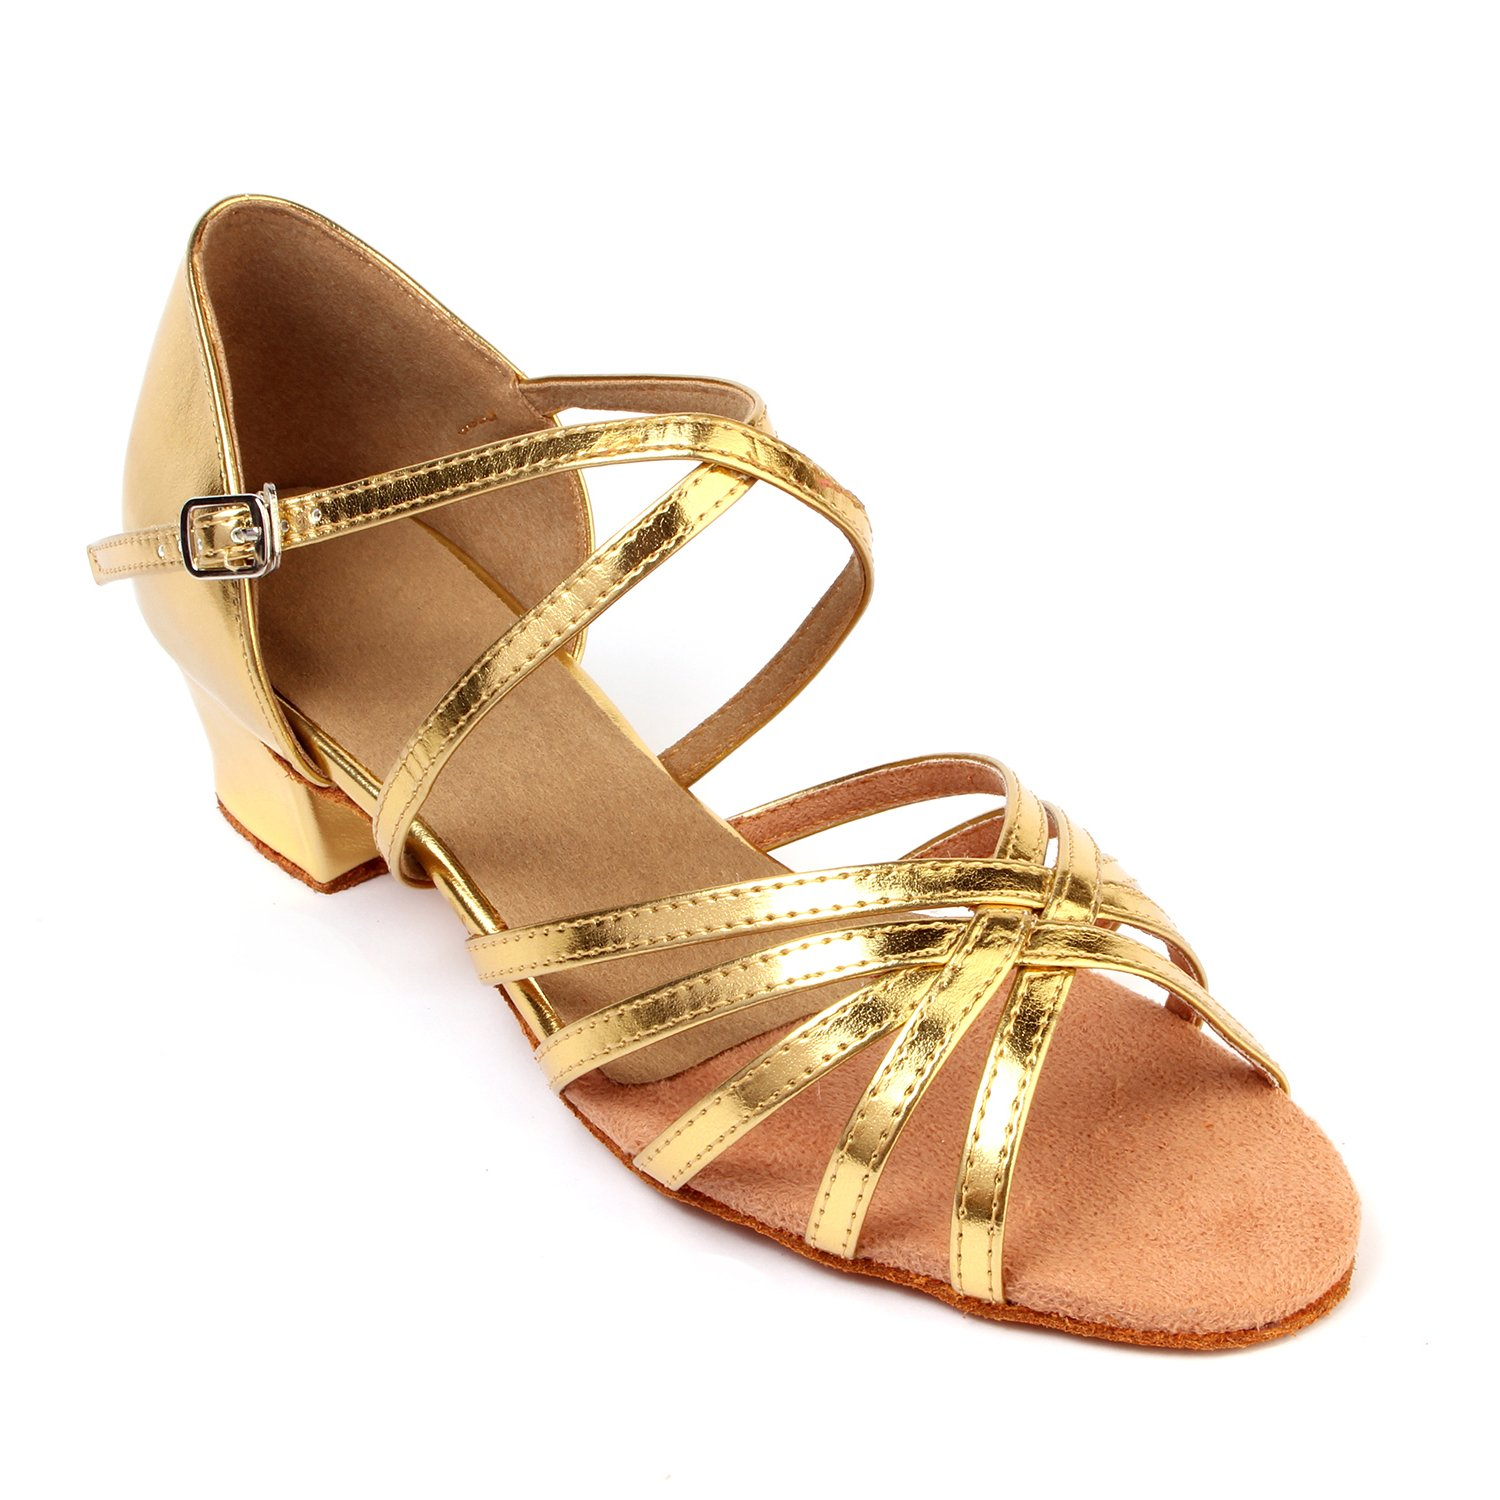 LOVELY BEAUTY Lady's Ballroom Dance Shoes for Chacha Latin Salsa Rumba Practice B0777NZ21L 9 B(M) US|Gold